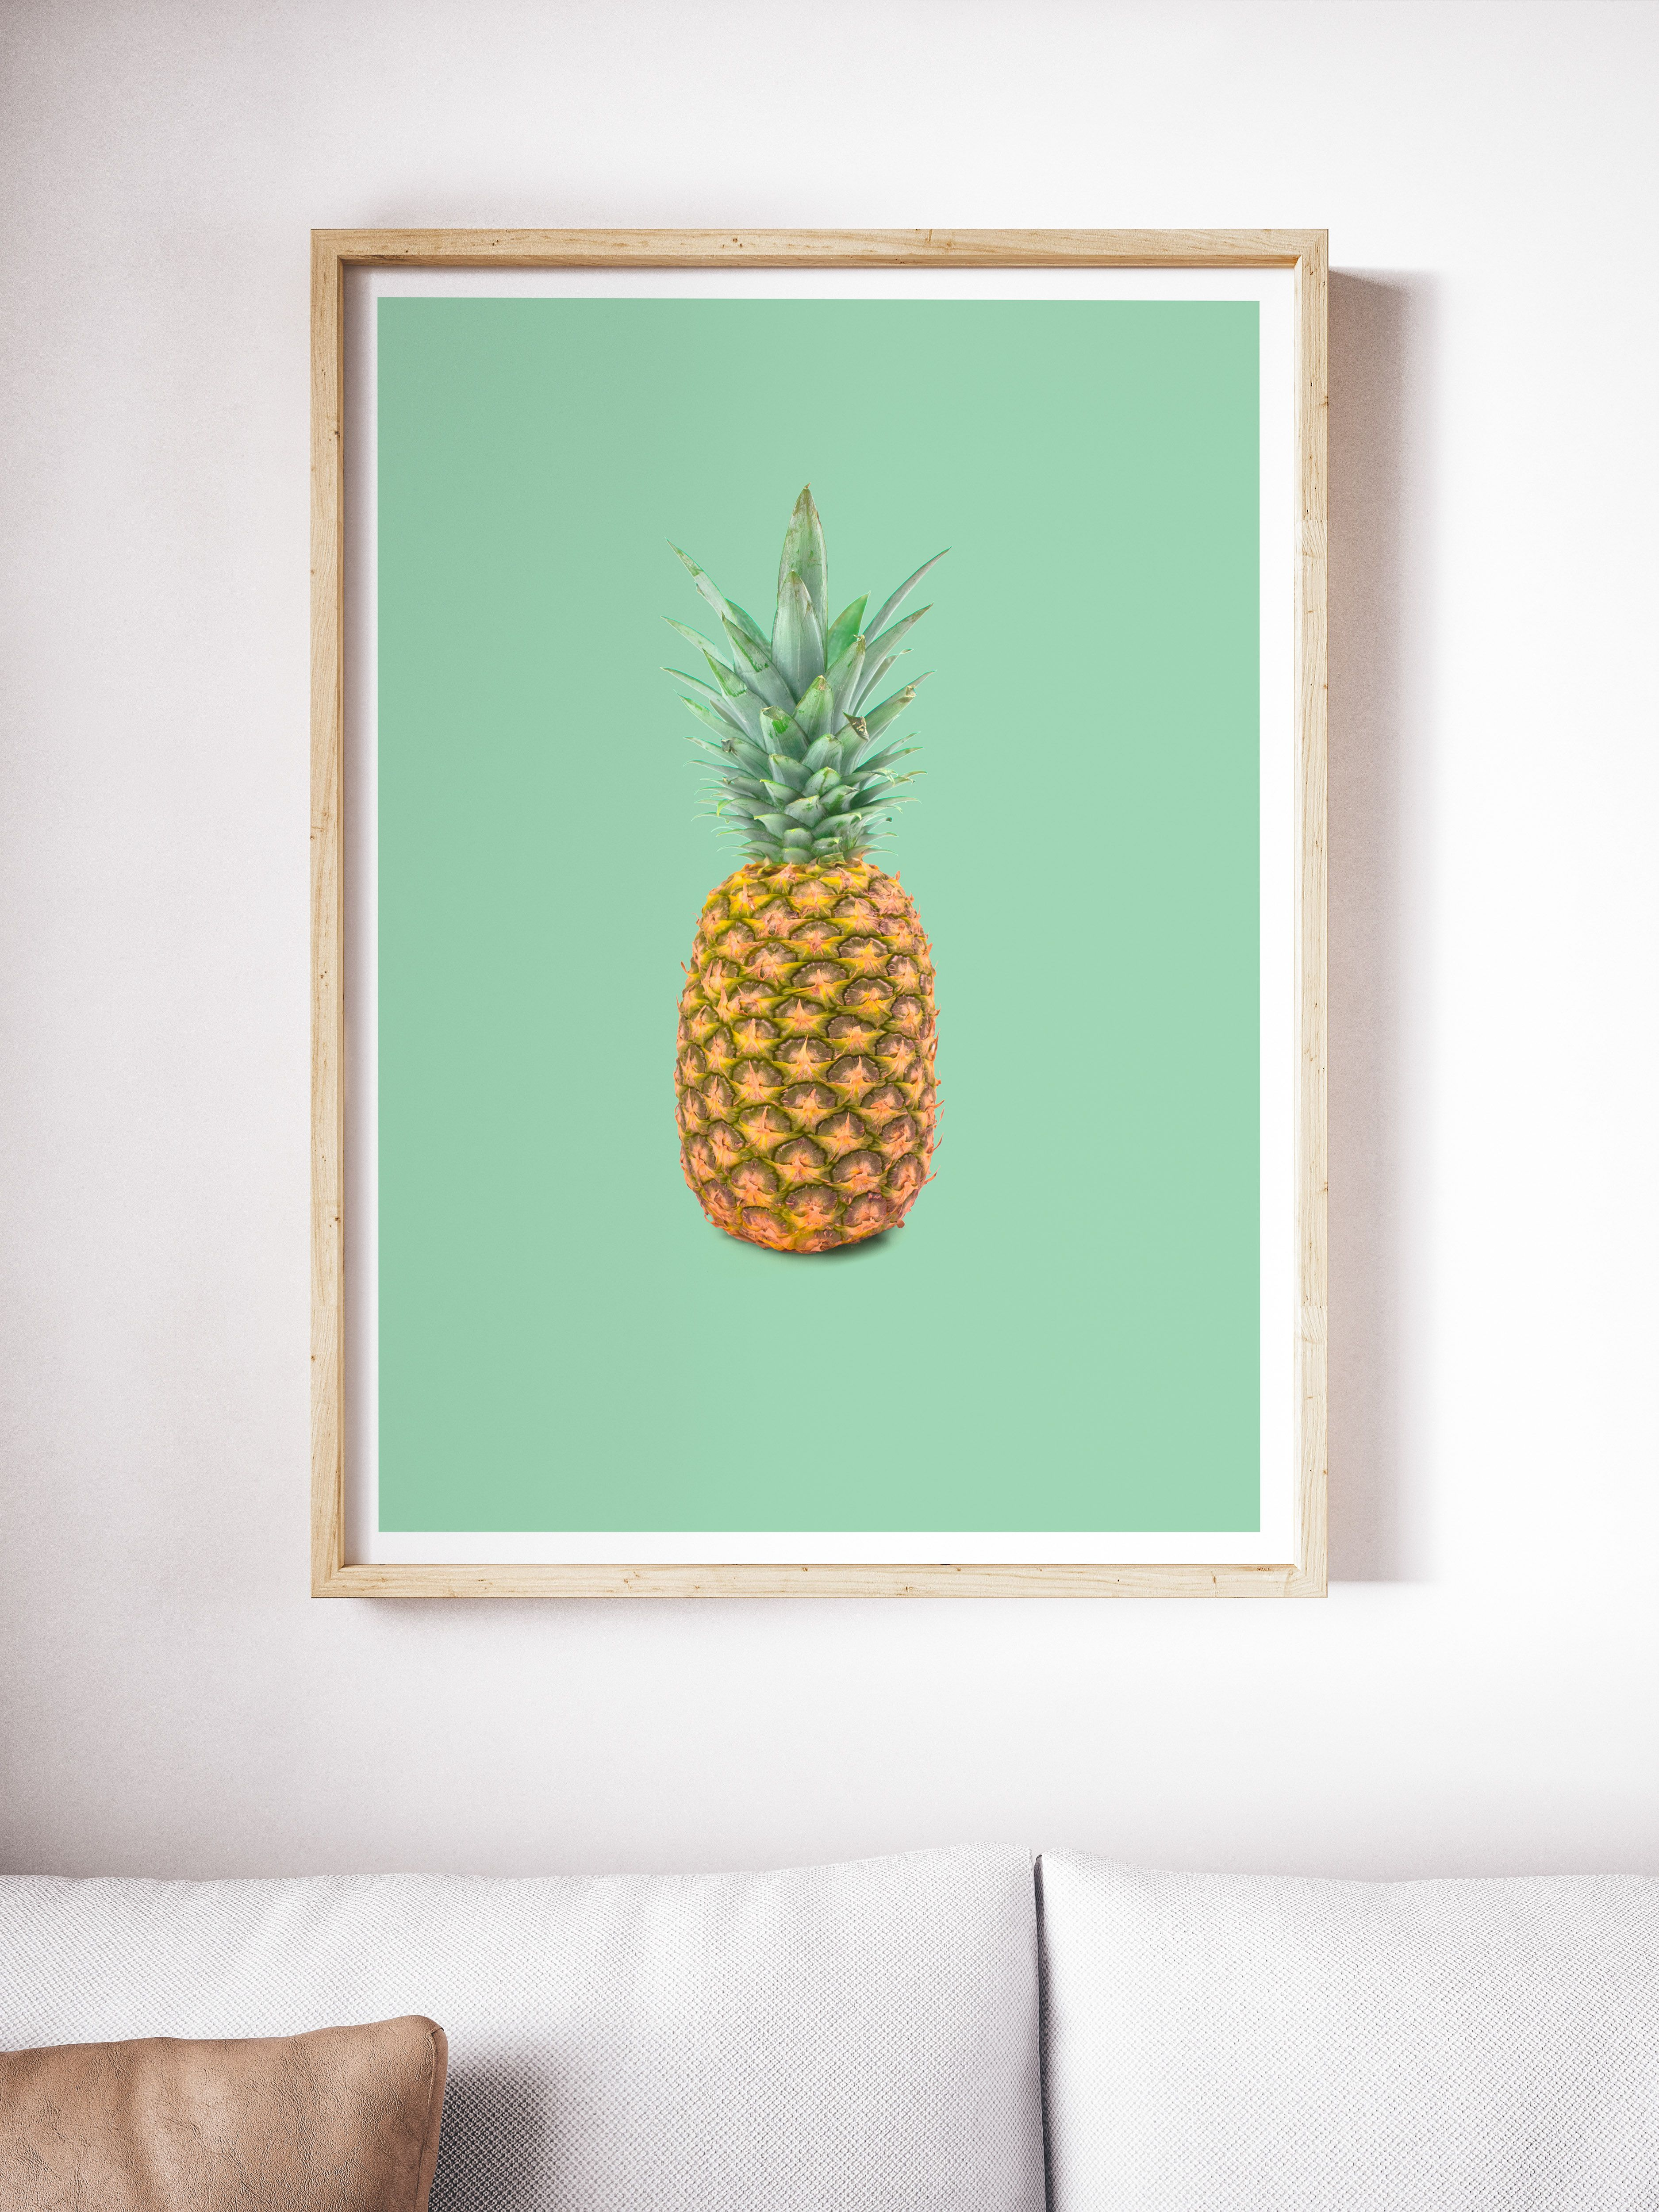 This printable pineapple wall art looks so good printed out and it adds a really fresh